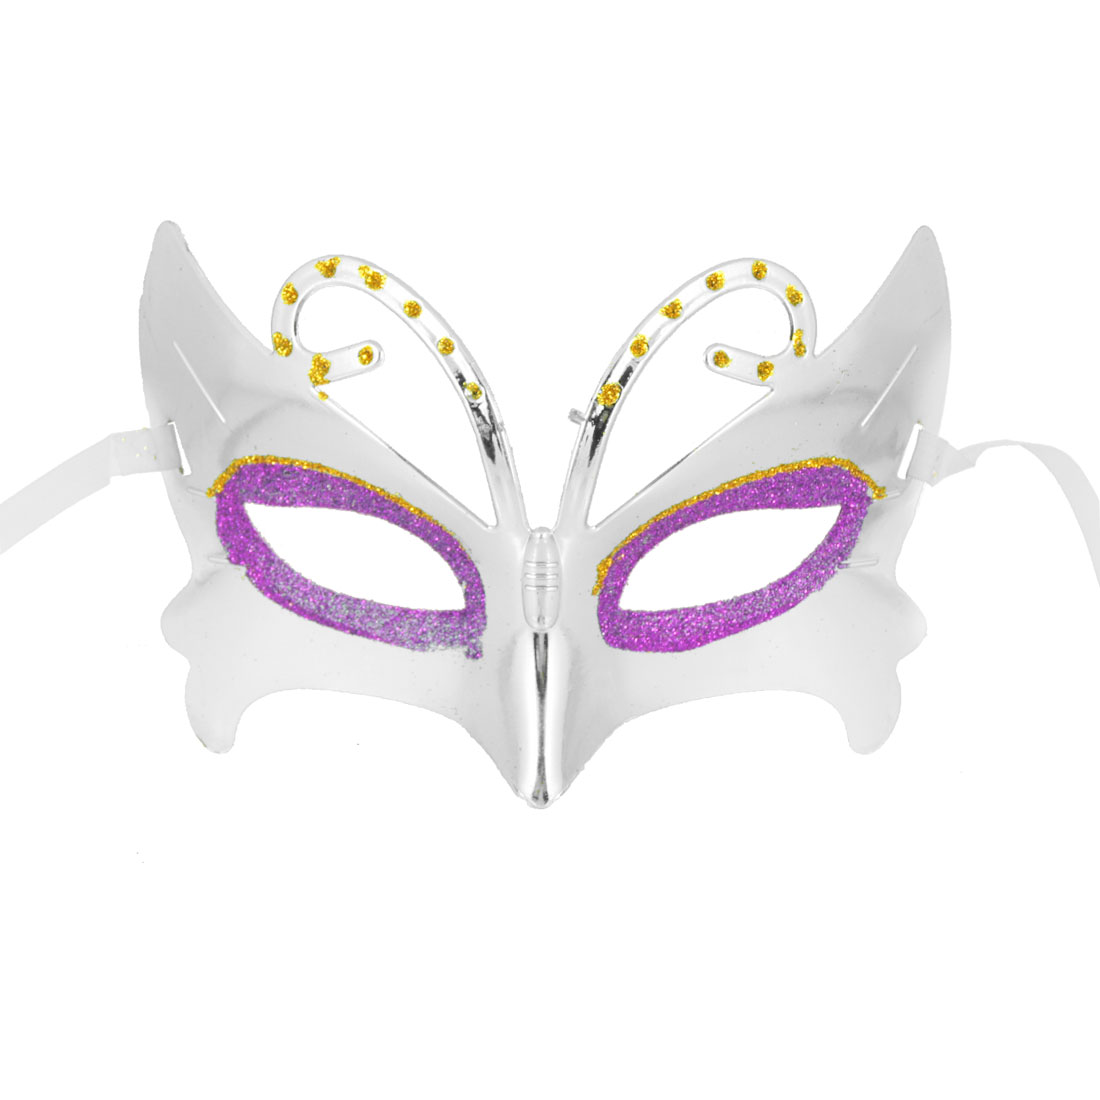 Rhinestone Detail Halloween Masquerade Self Tie Band Plastic Face Mask Silver Tone